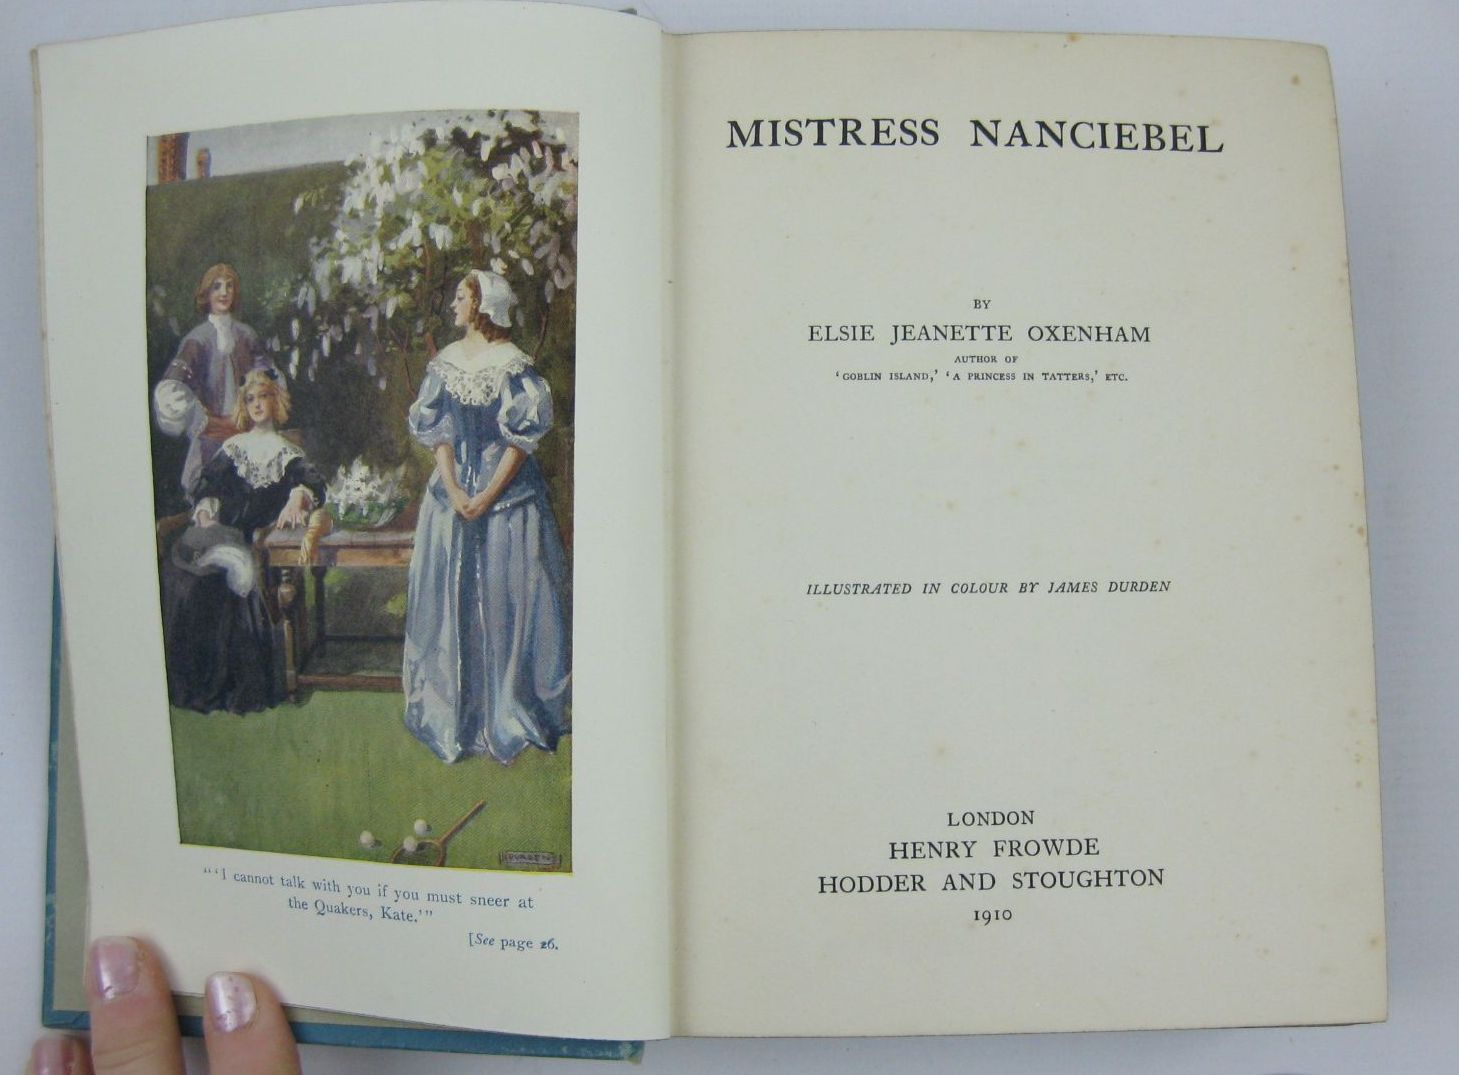 Photo of MISTRESS NANCIEBEL written by Oxenham, Elsie J. illustrated by Durden, James published by Hodder & Stoughton, Henry Frowde (STOCK CODE: 1506913)  for sale by Stella & Rose's Books